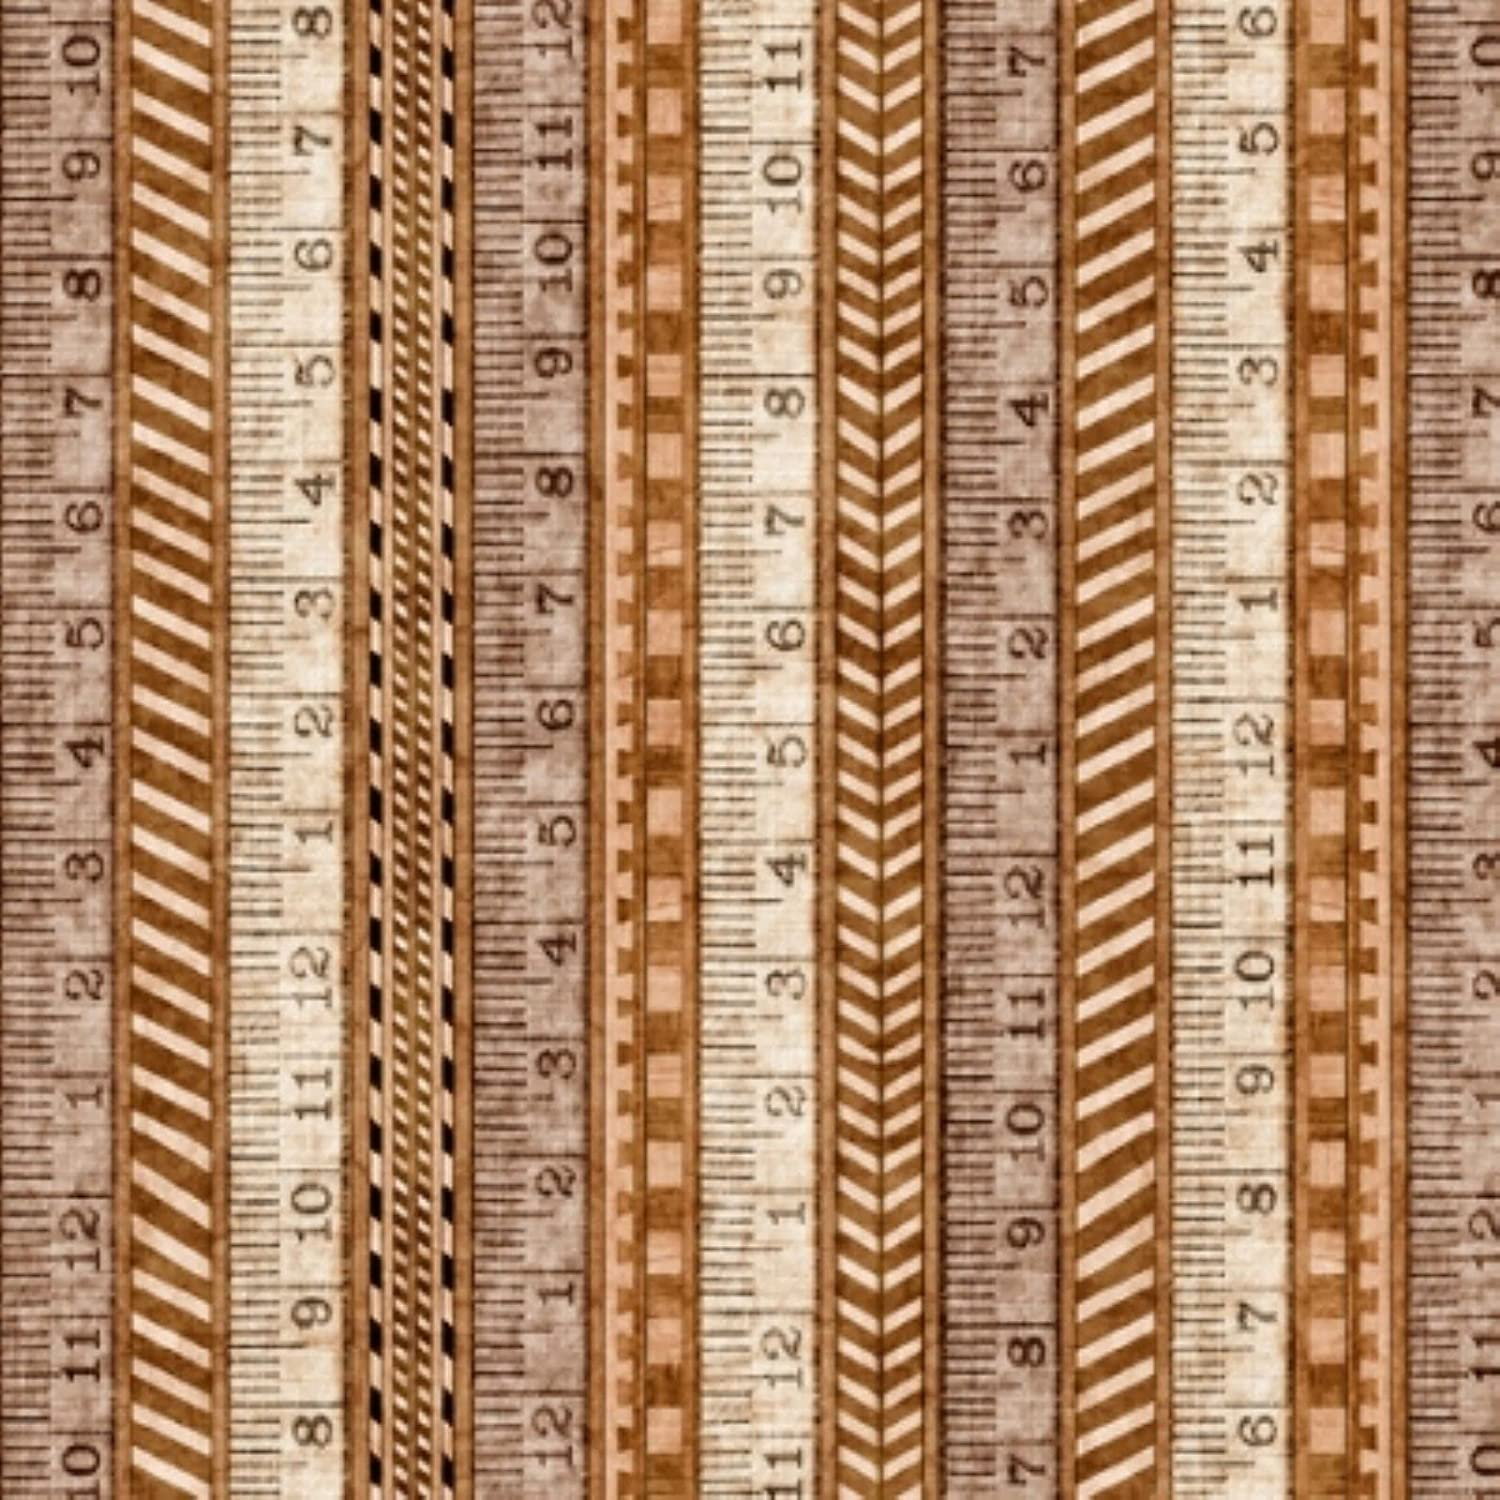 QT Fabrics A Little Handy by Tan security Measure Tape 28200 Morris Dan Selling and selling